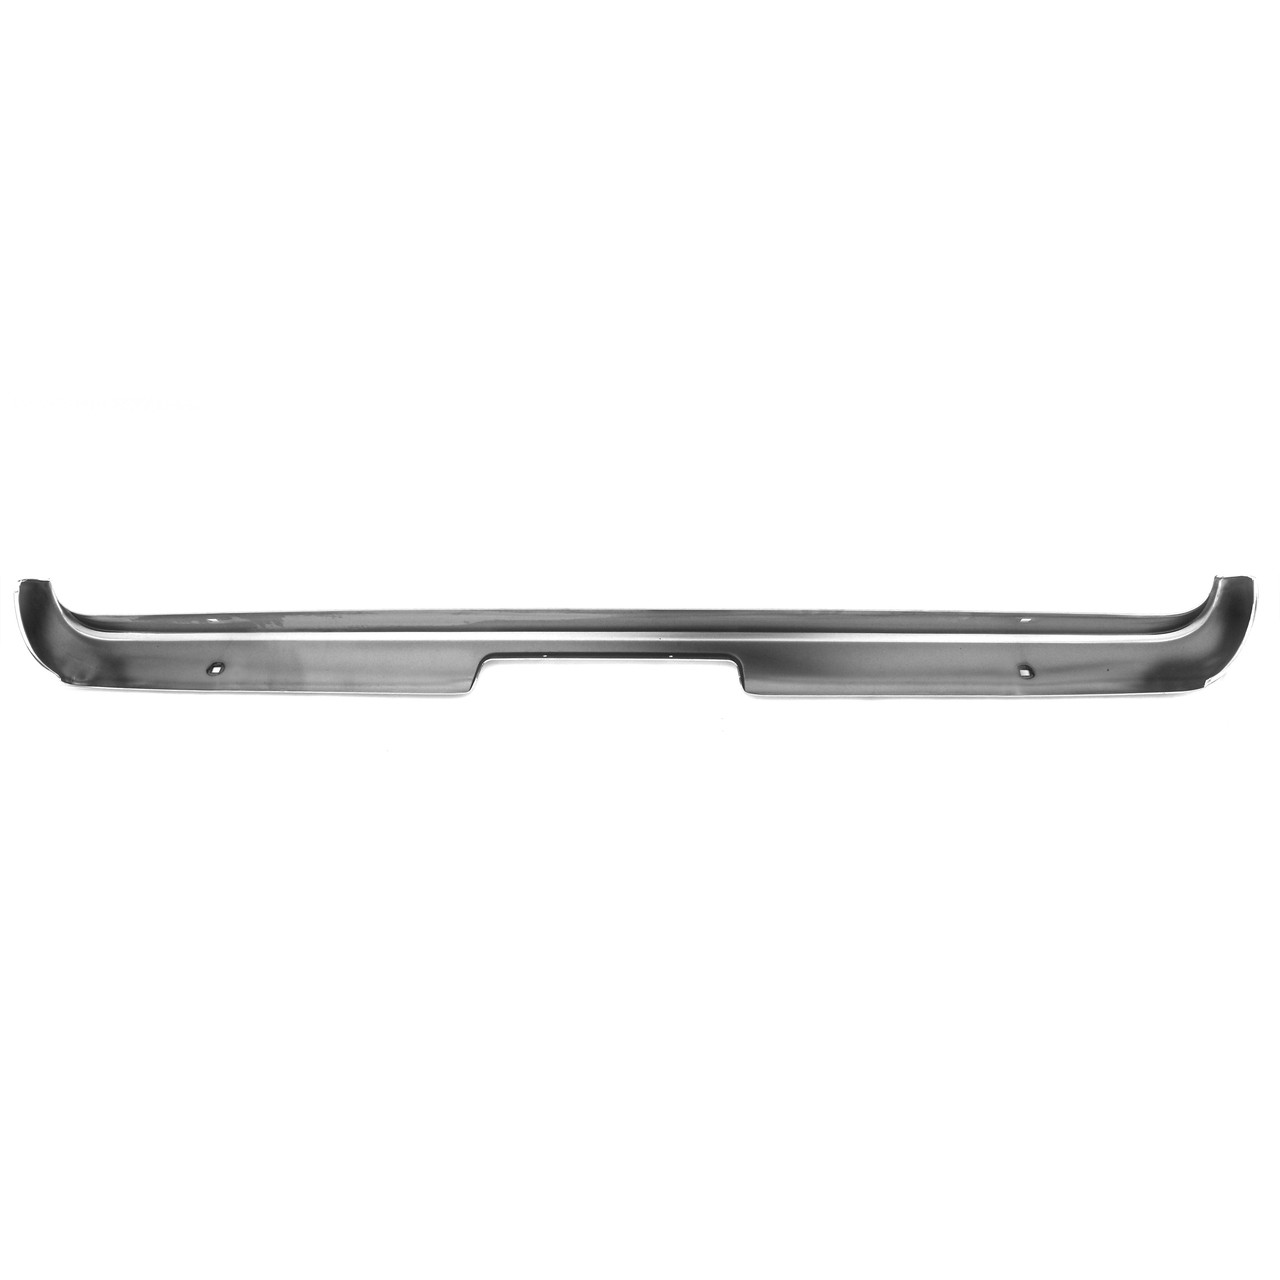 Bumper Rear Chrome [FM-BB007]